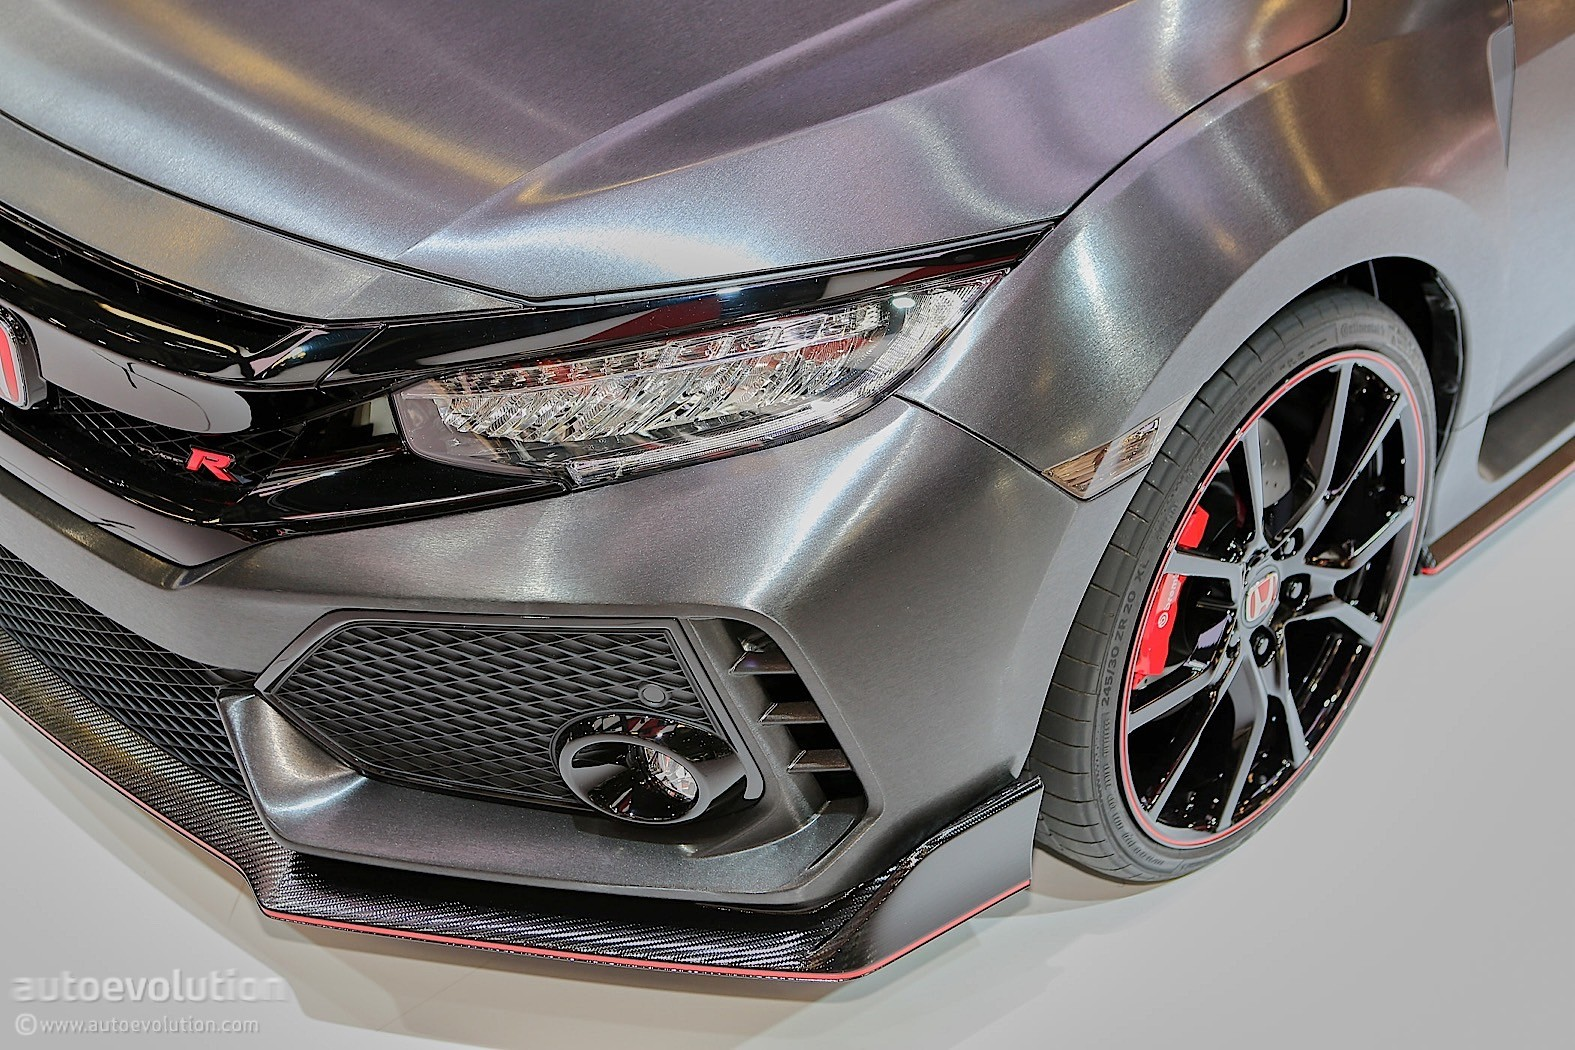 2016 Civic Type R Price >> 2017 Honda Civic Type R Black Edition Limited to 100 Examples - autoevolution